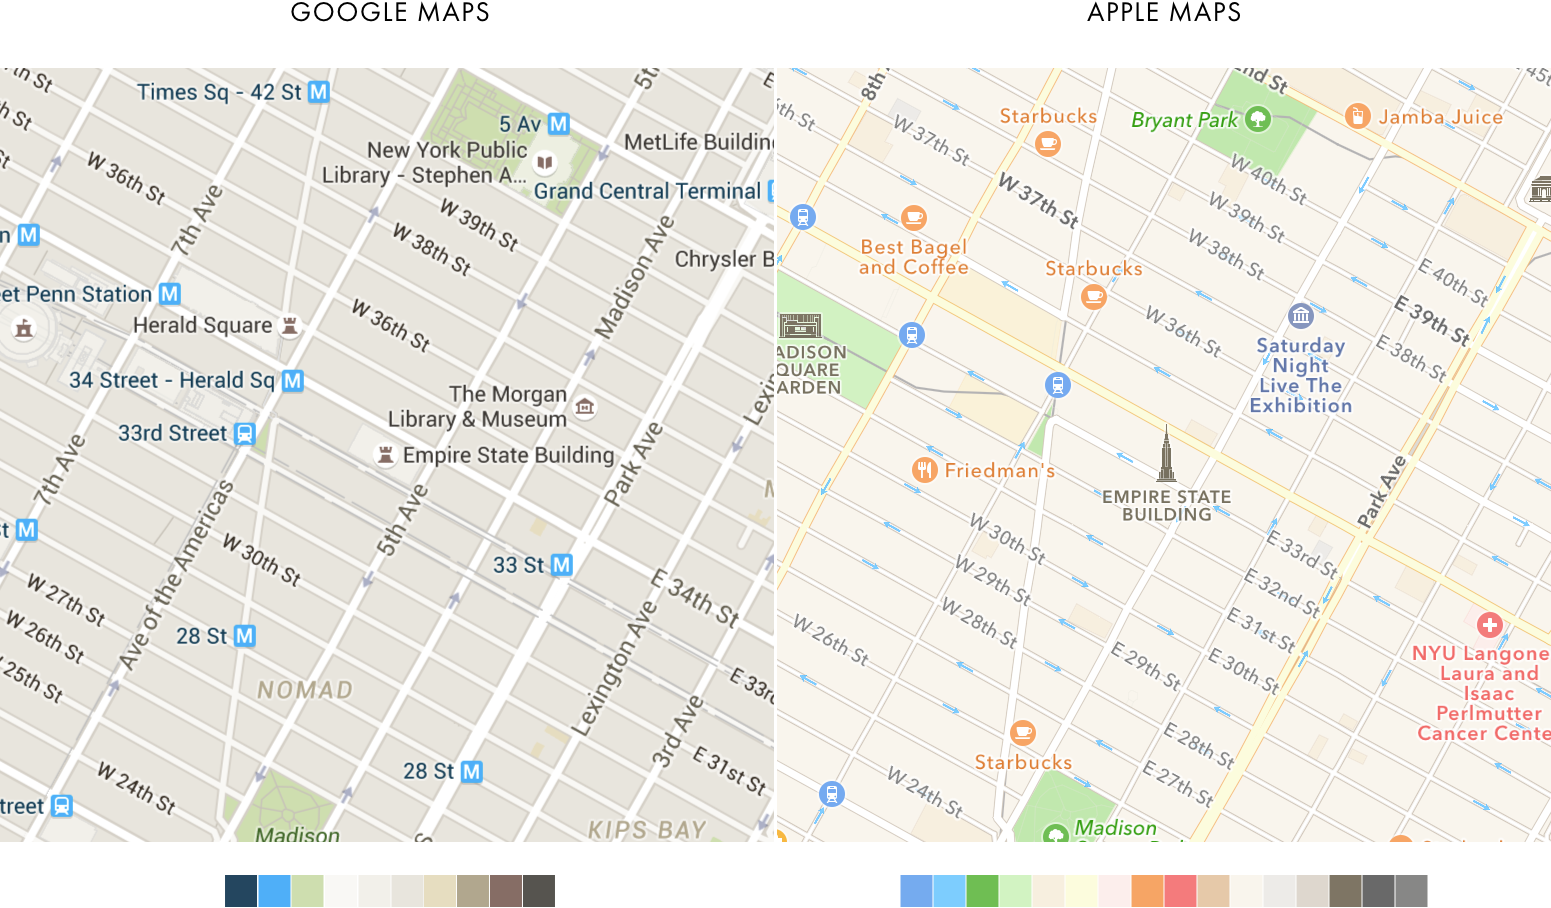 apple-map-and-google-map-who-is-the-best_02